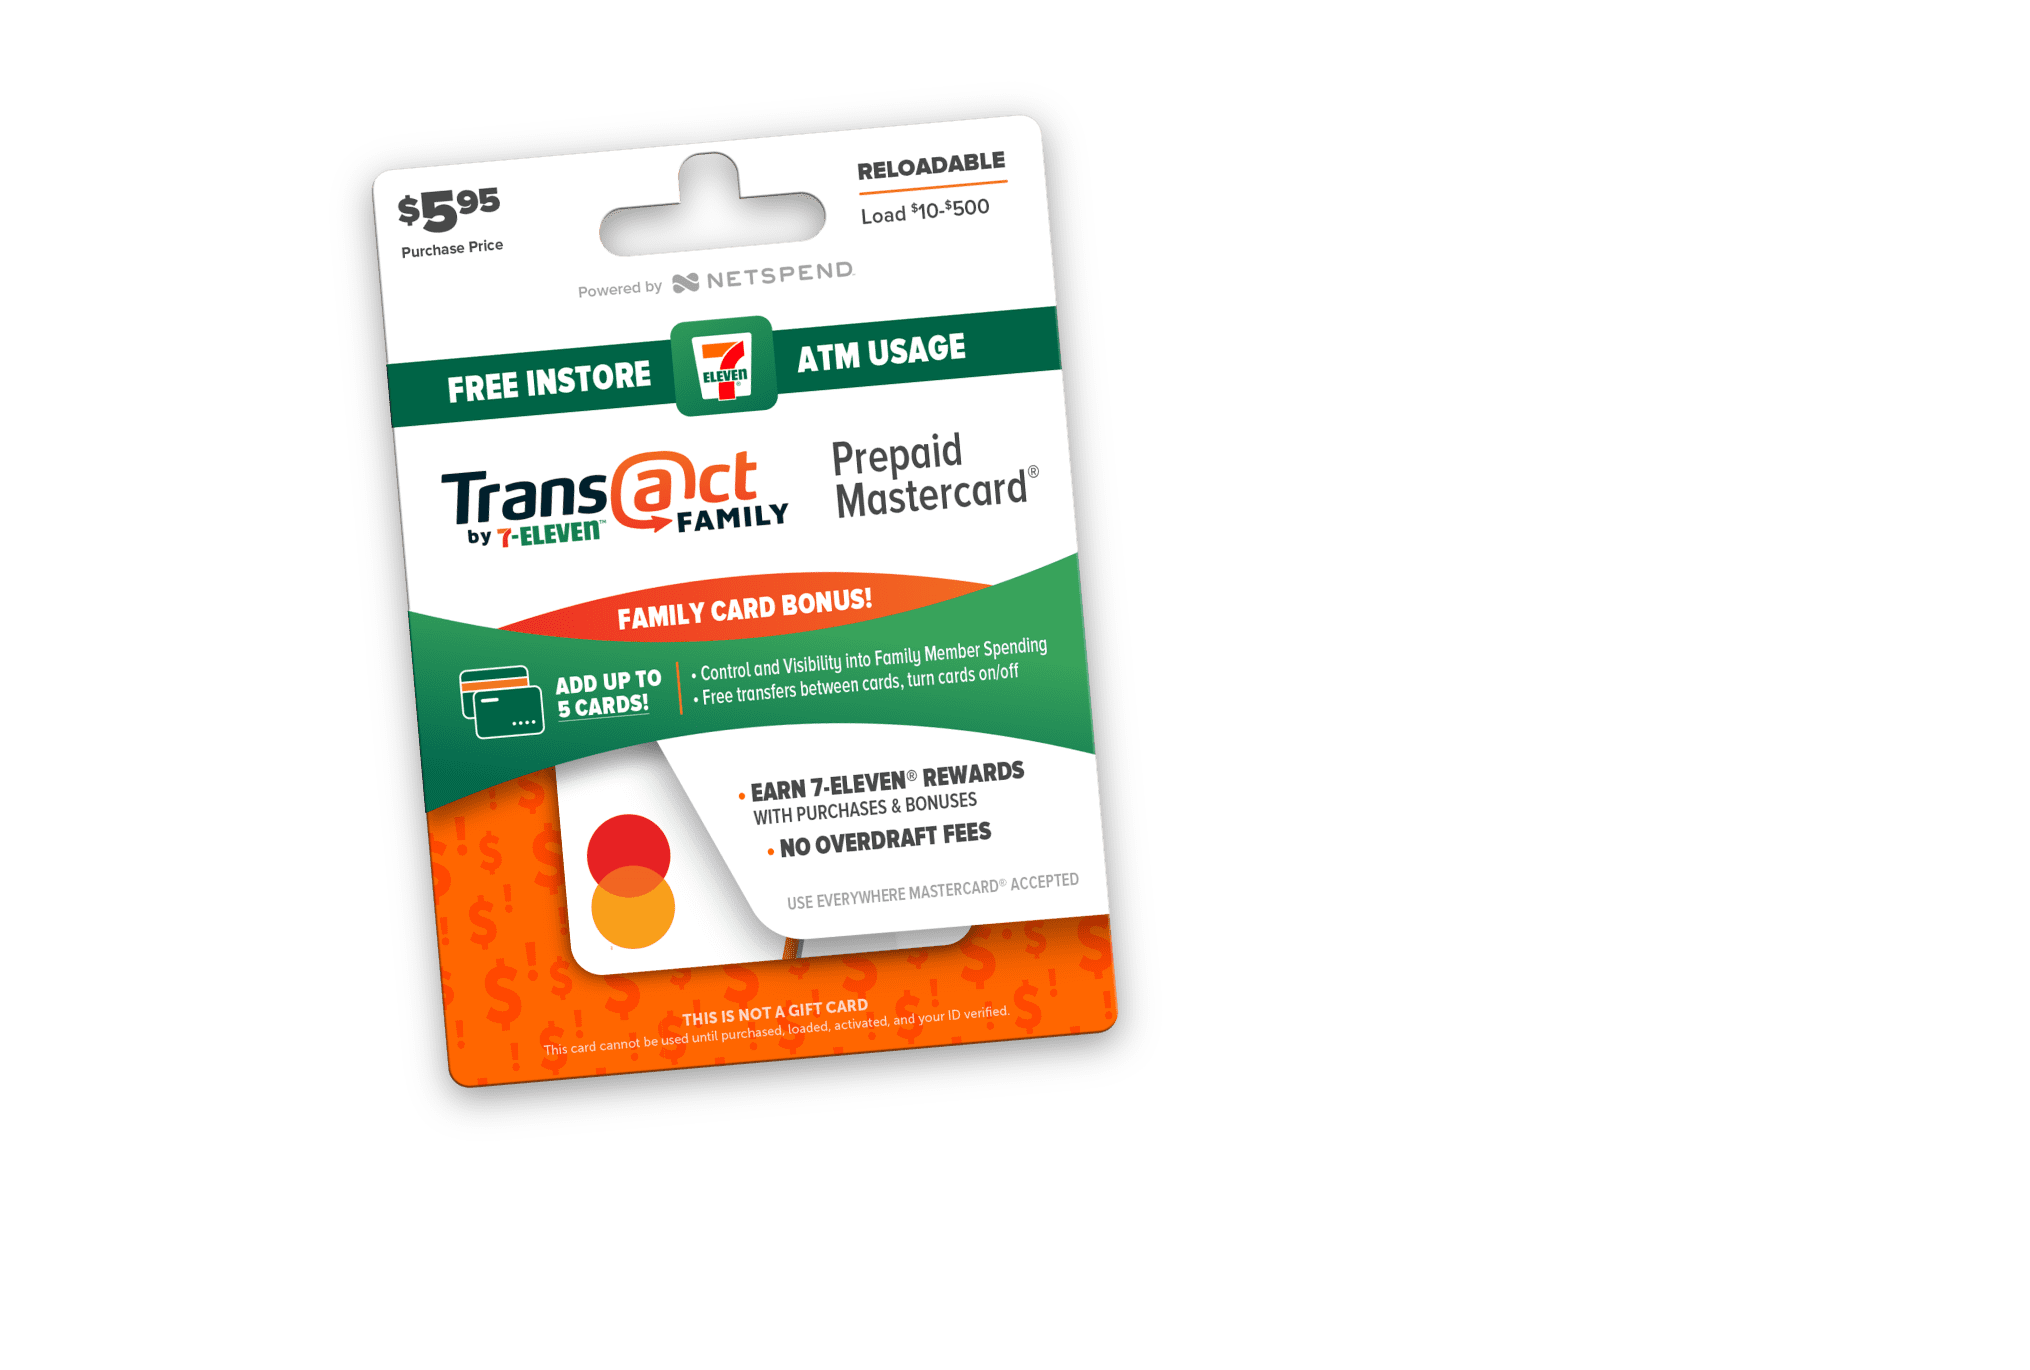 7 eleven transact package design company